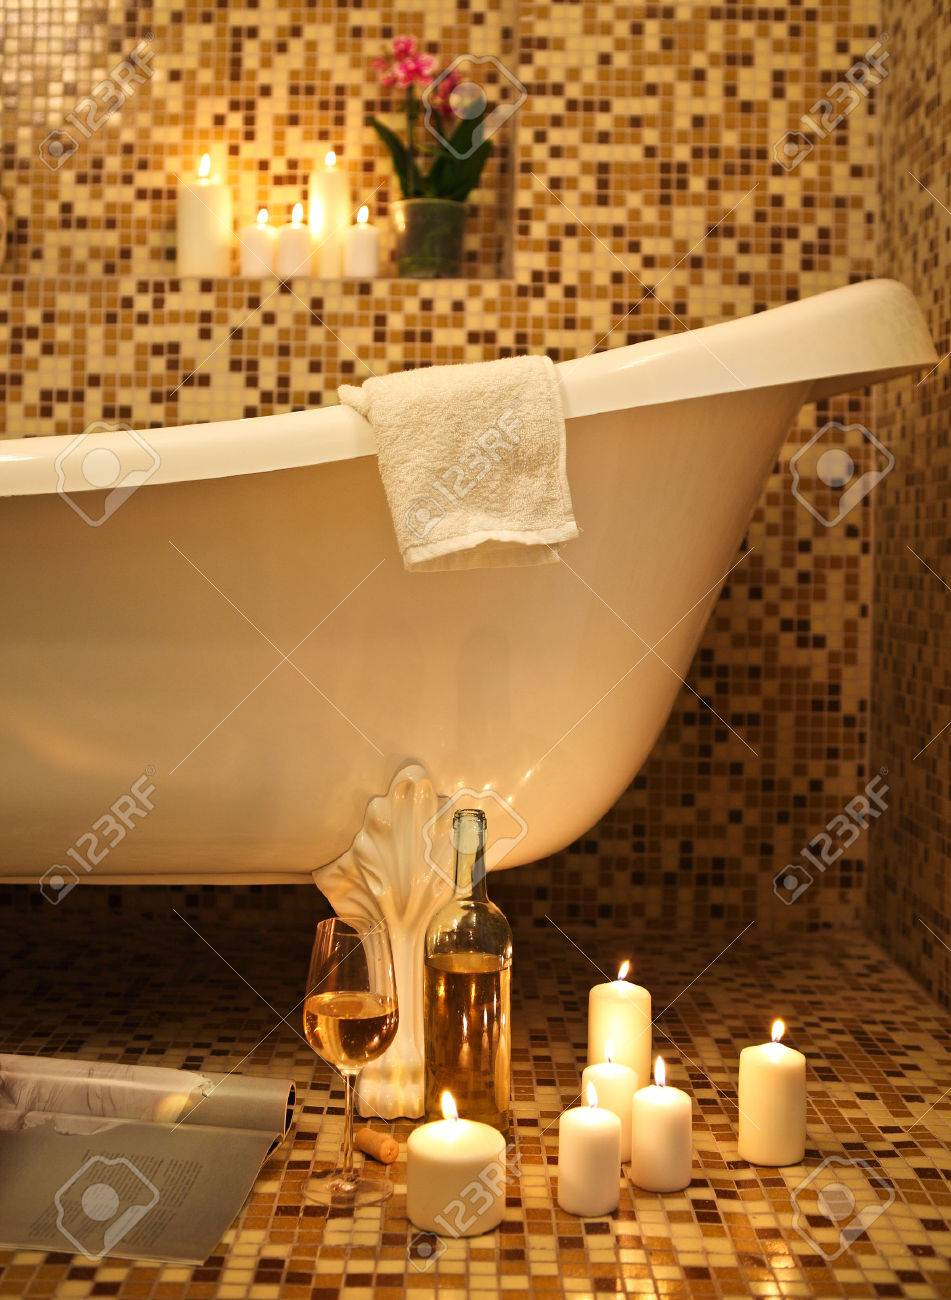 Home Bathroom Interior With Bubble Bath, Candles, Magazine And White Whine.  Relax Concept